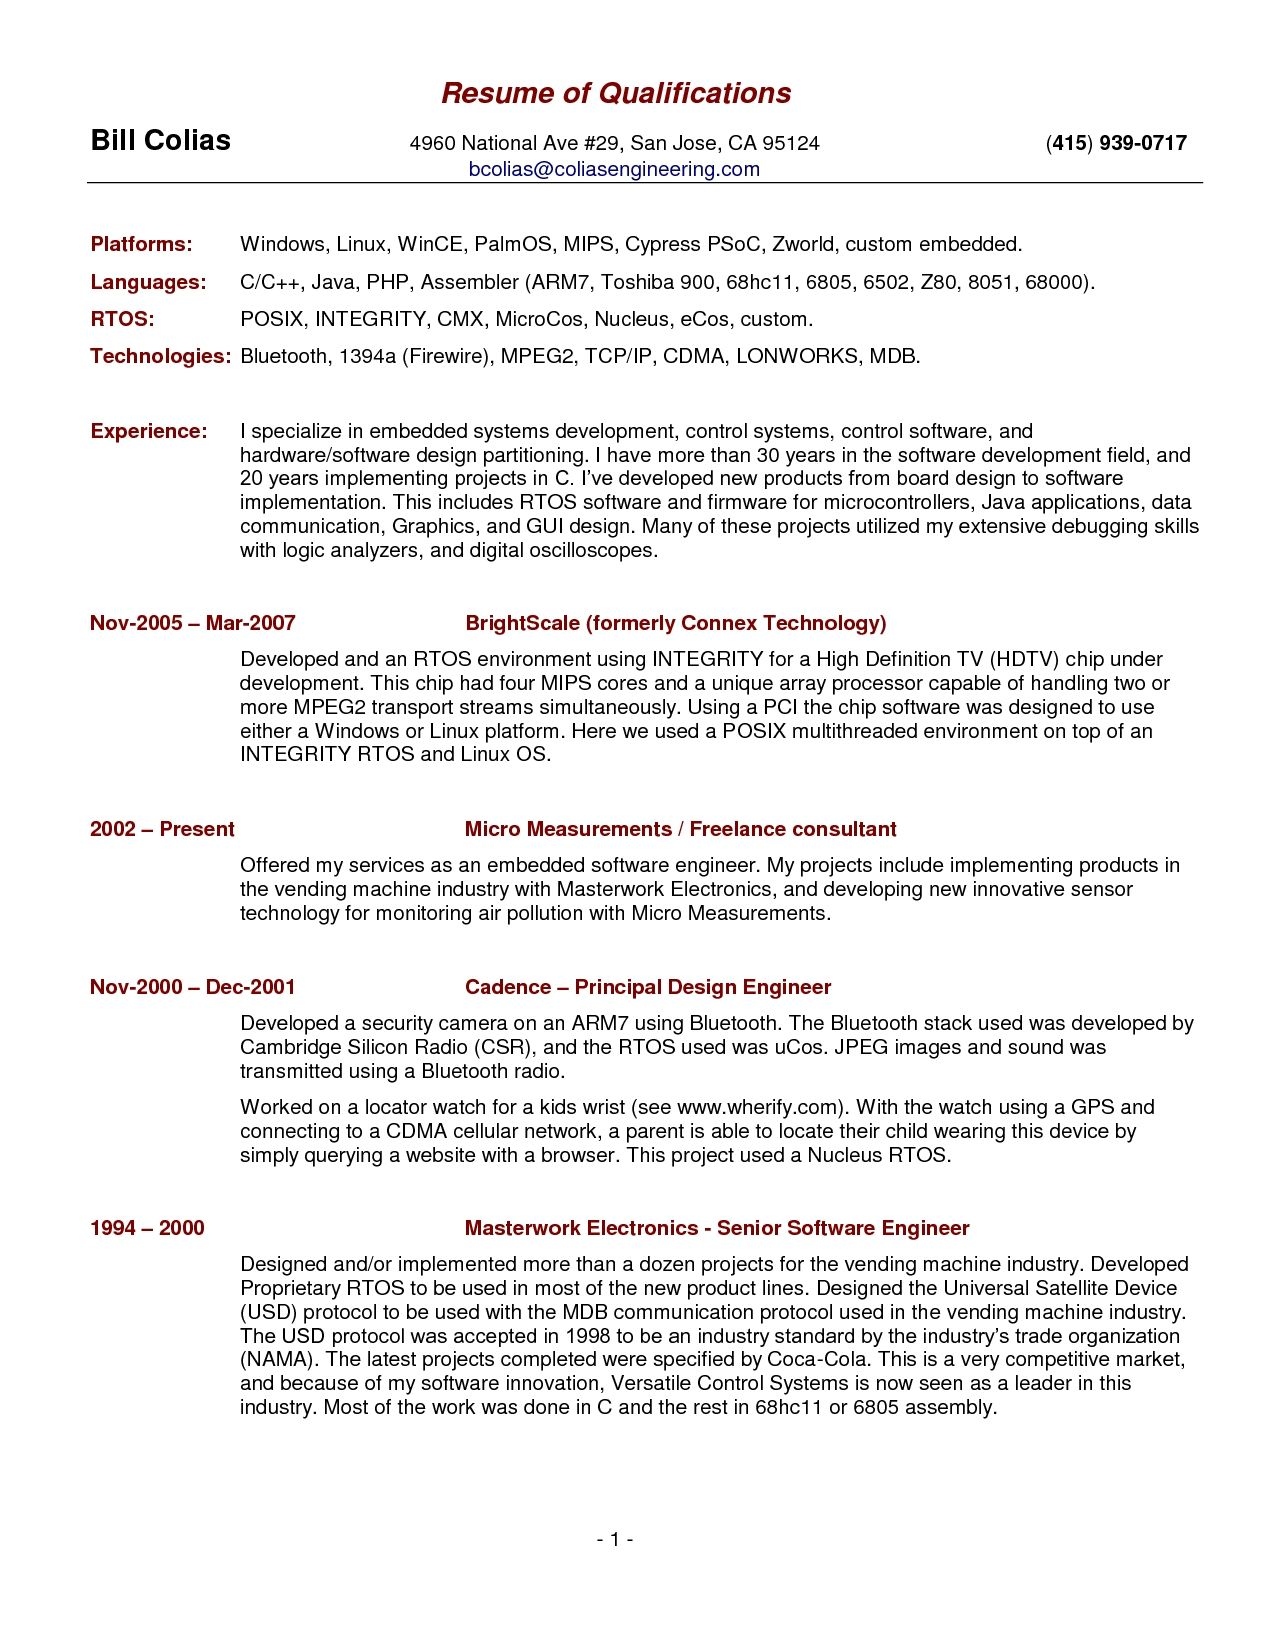 Job Qualifications Sample Skylogic Skills Resume Examples Qualification Key  Skills For A Resume Examples